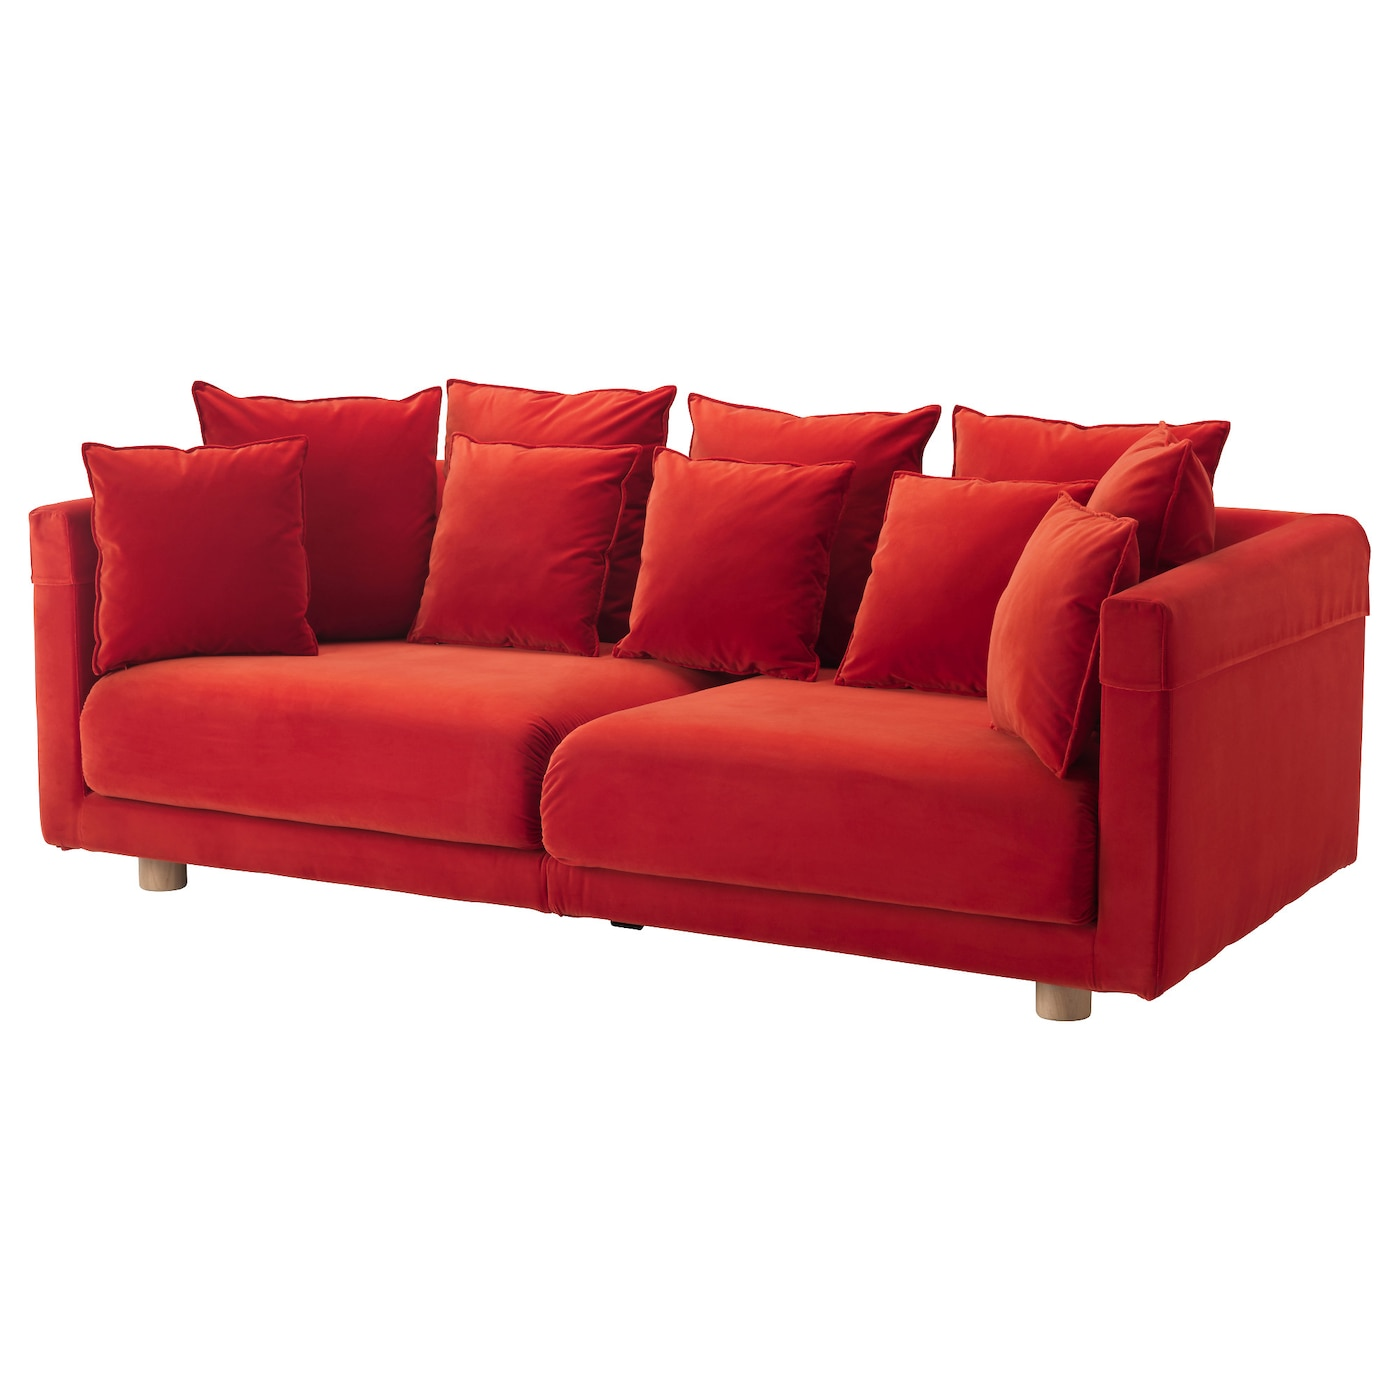 Stockholm 2017 pouffe sandbacka orange 50x50 cm ikea Red sofas and loveseats